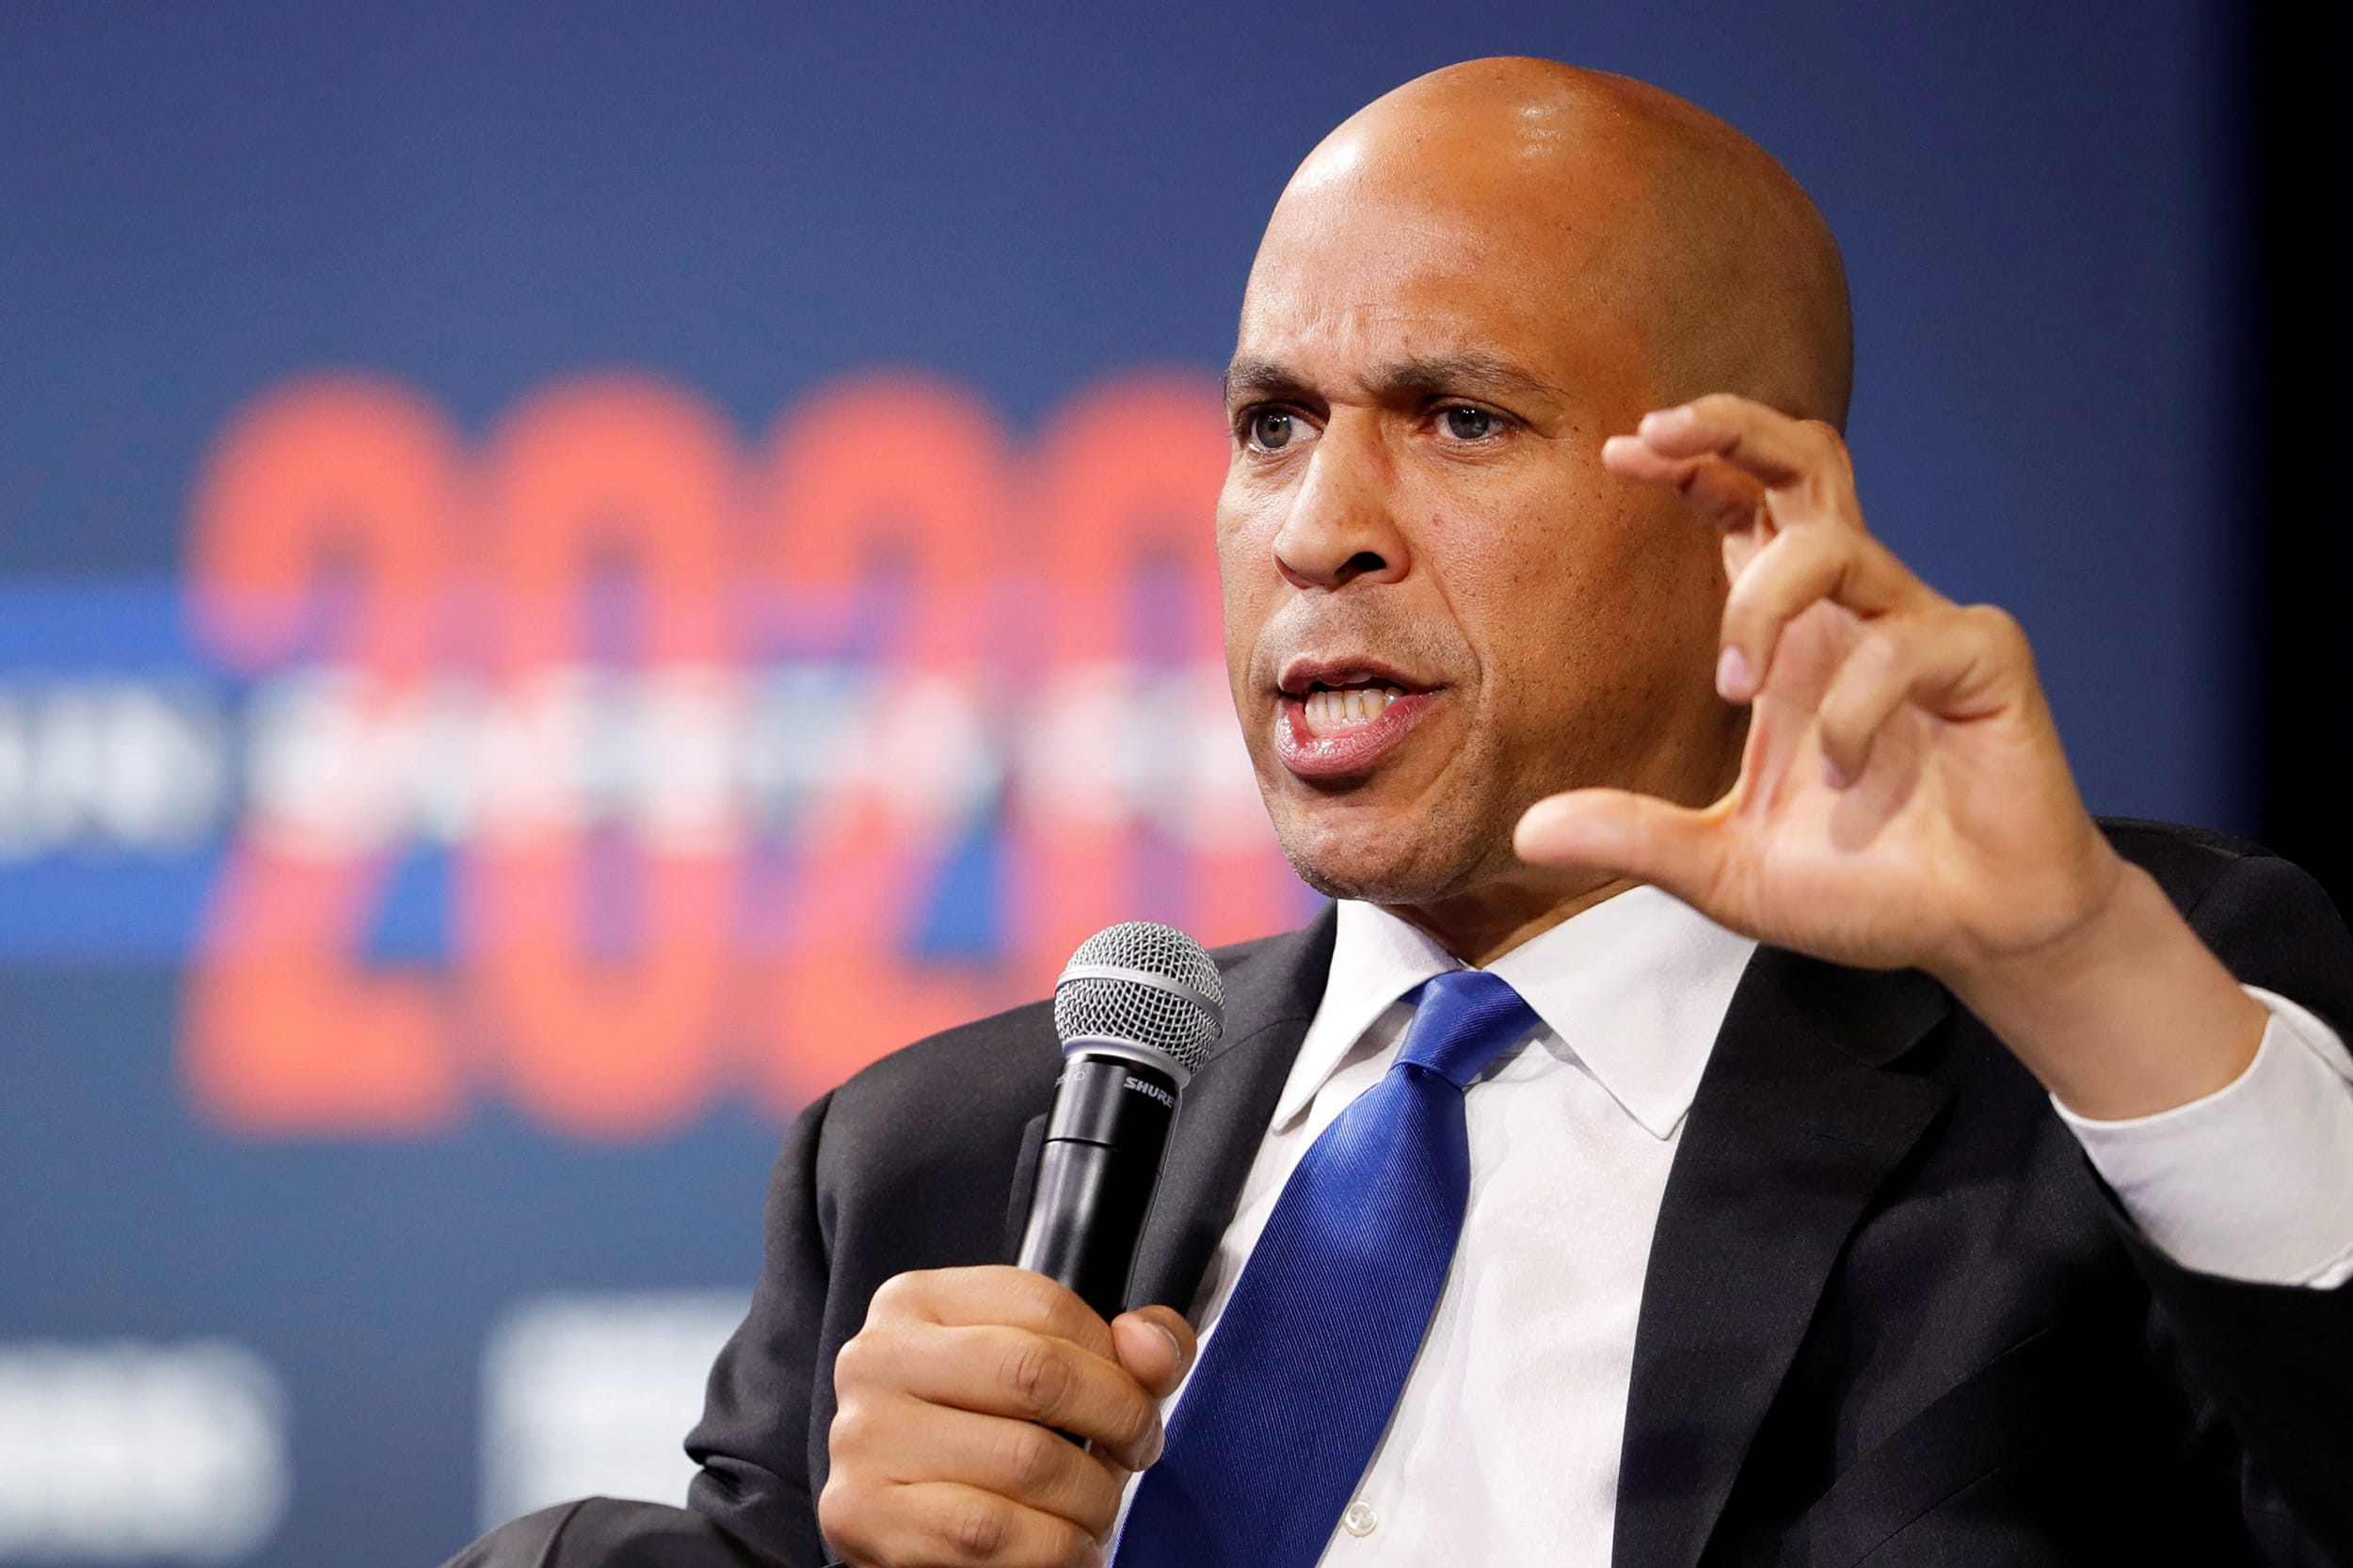 Democrat Cory Booker drops out of 2020 presidential race